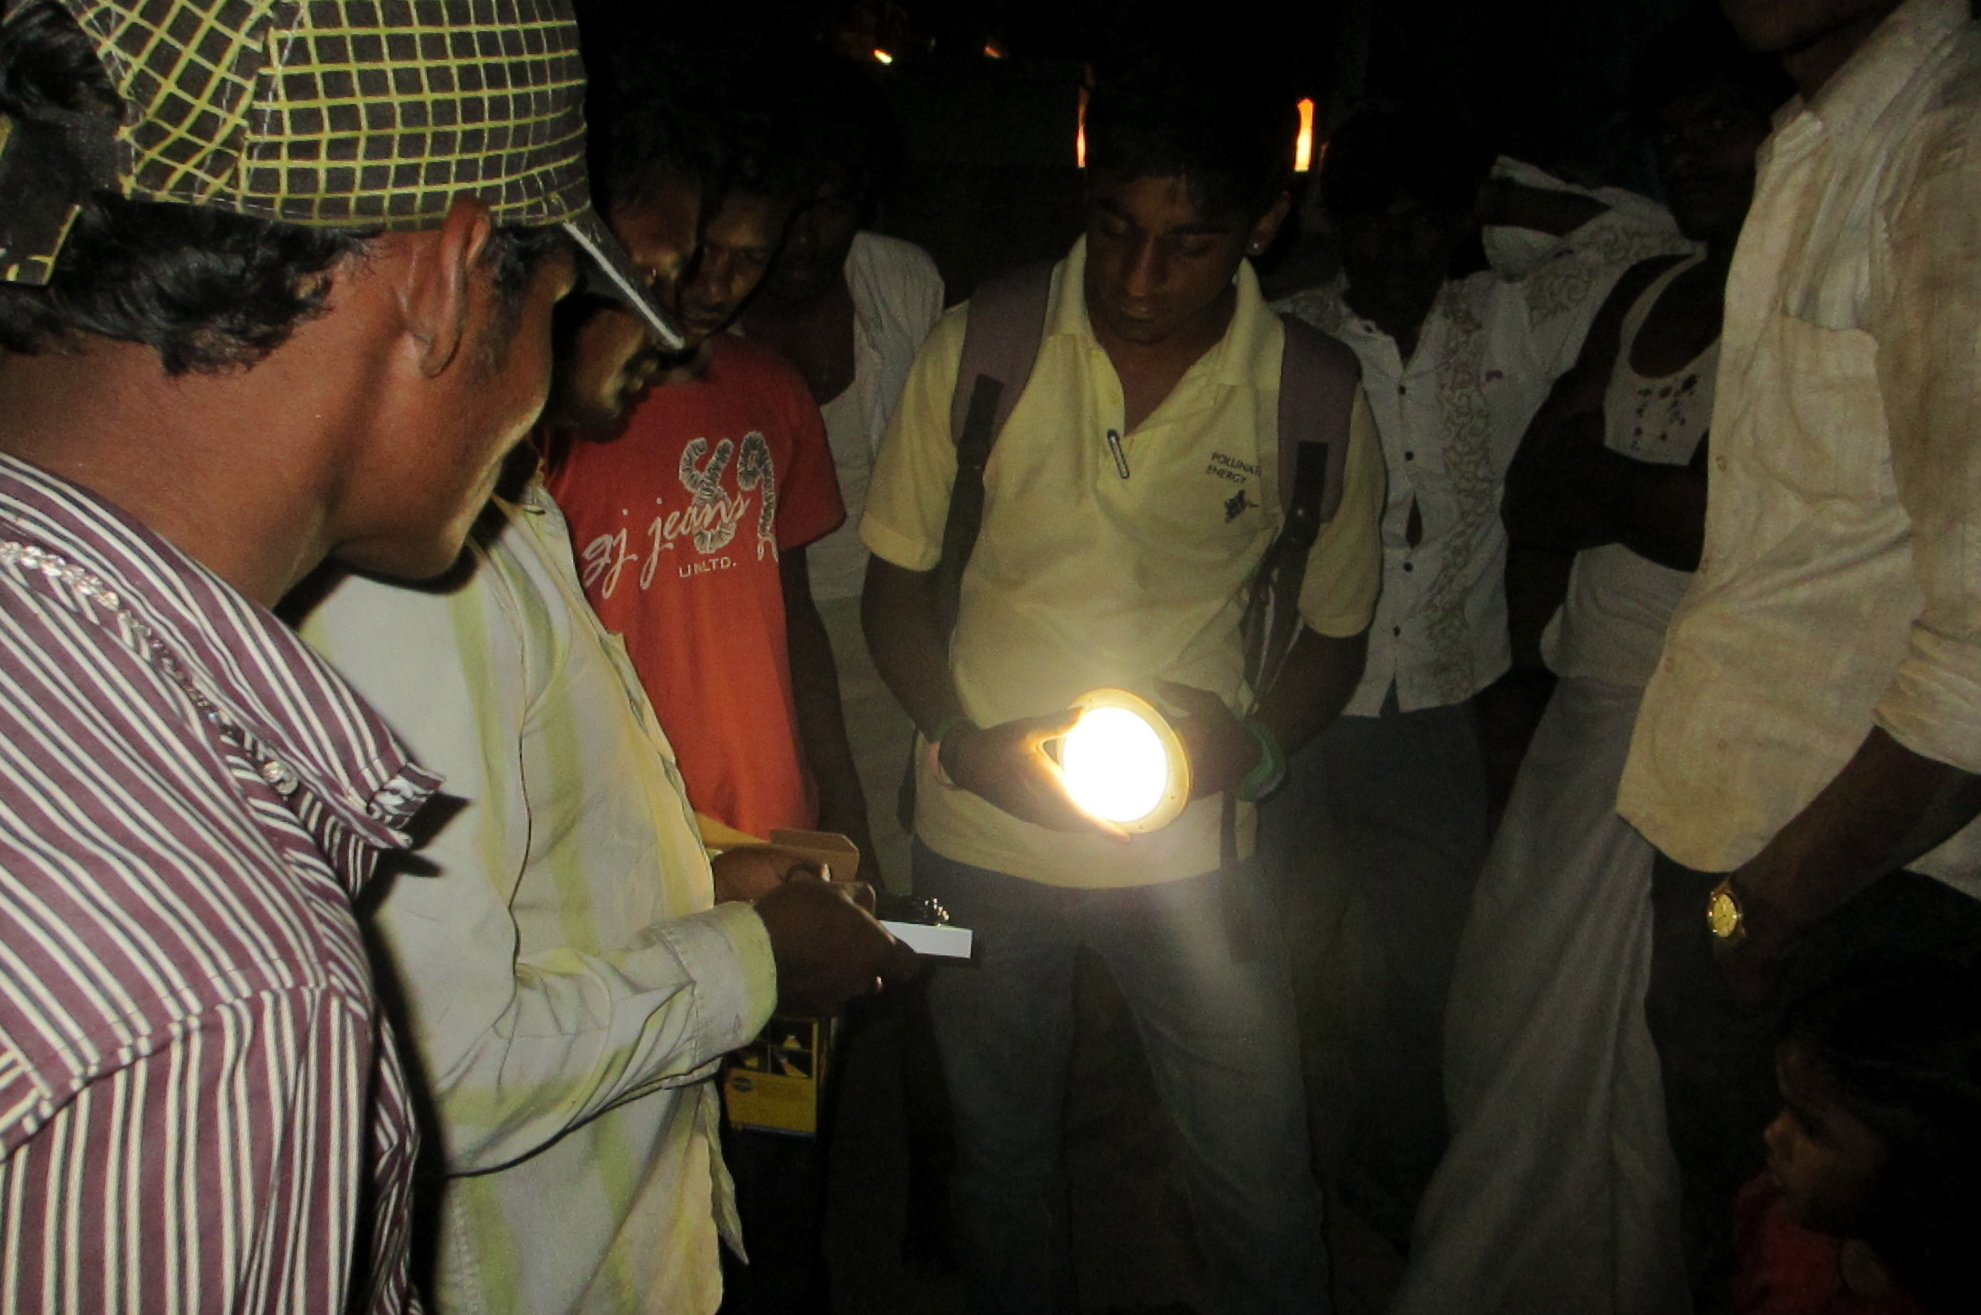 People holding a solar light